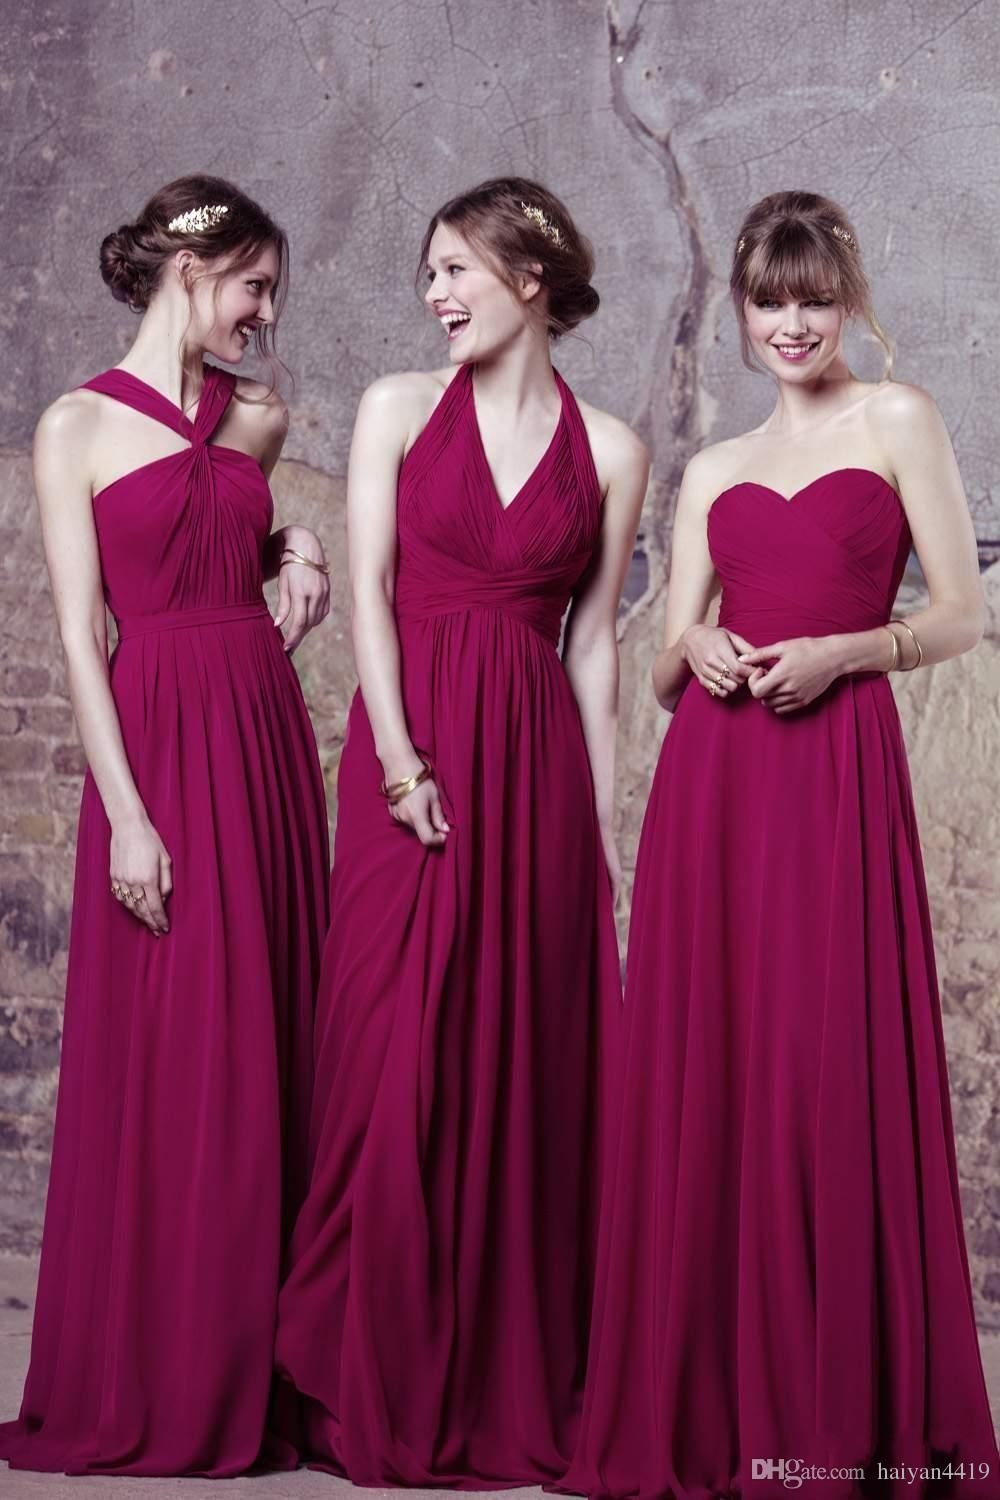 2017 new cheap long bridesmaid dresses halter wedding guest wear 2017 new cheap long bridesmaid dresses halter wedding guest wear summer beach chiffon plum party dress plus size maid of honor gowns ombrellifo Choice Image